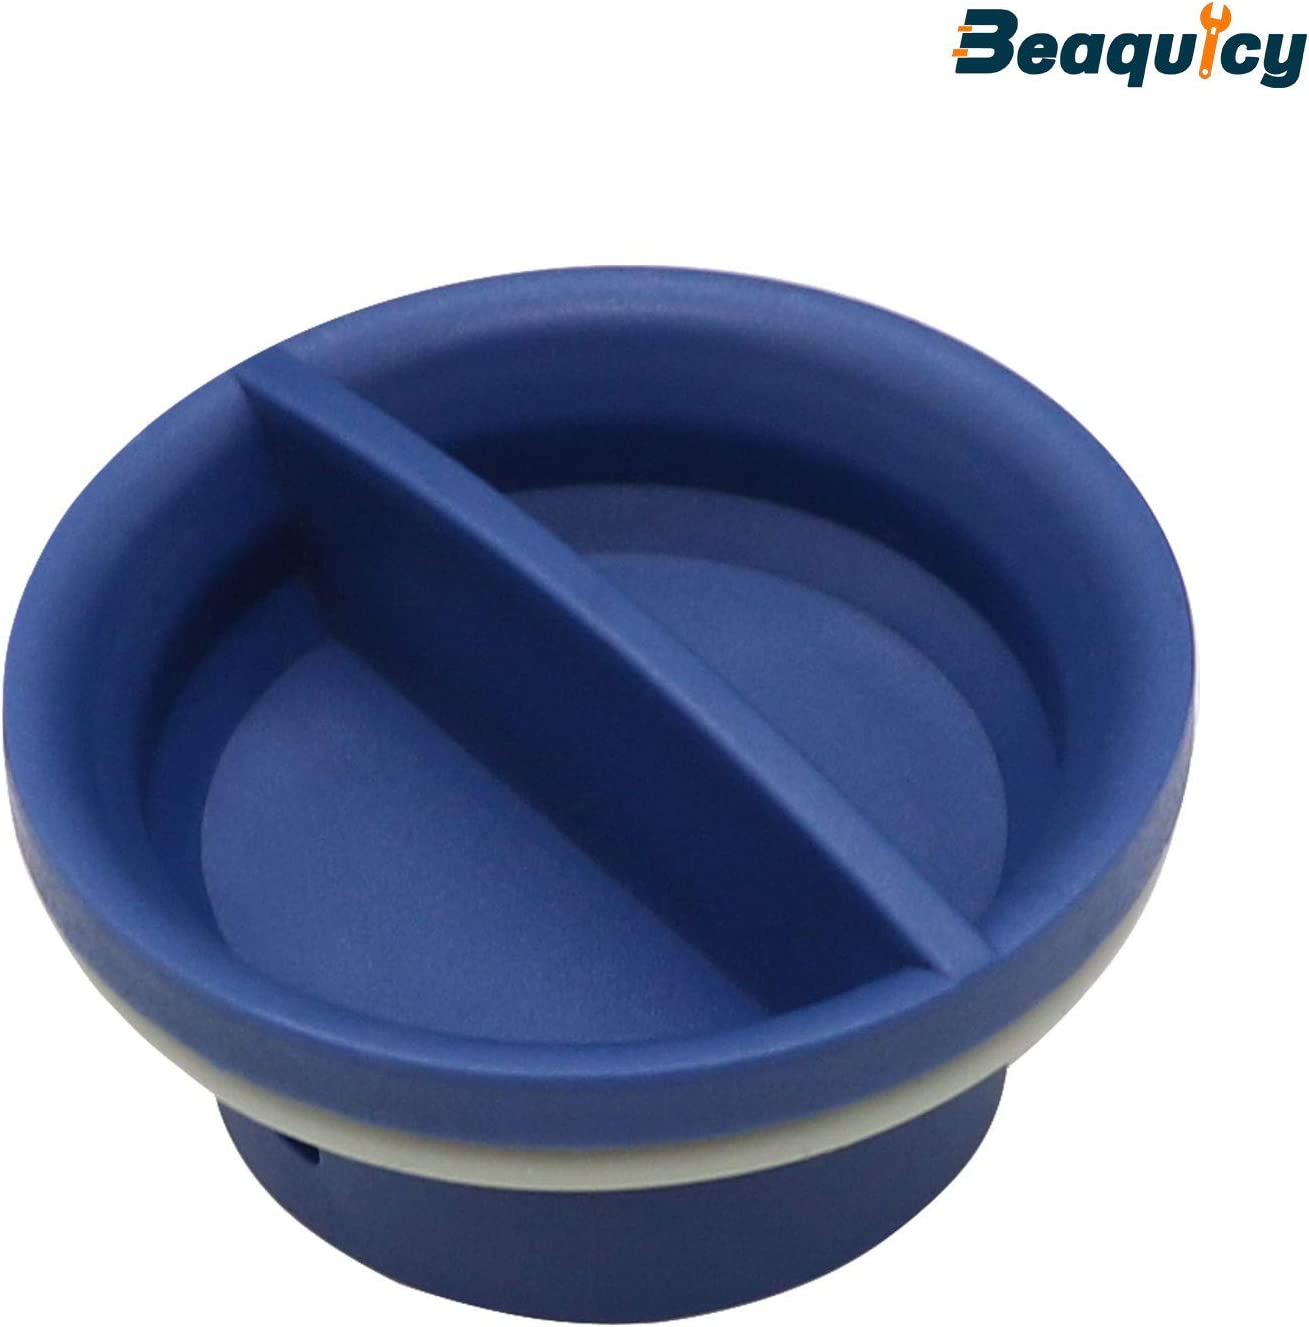 W10524920 Dishwasher Rinse Aid Cap by Beaquicy - Replacement for Whirlpool & Kitchen Aid Dishwasher